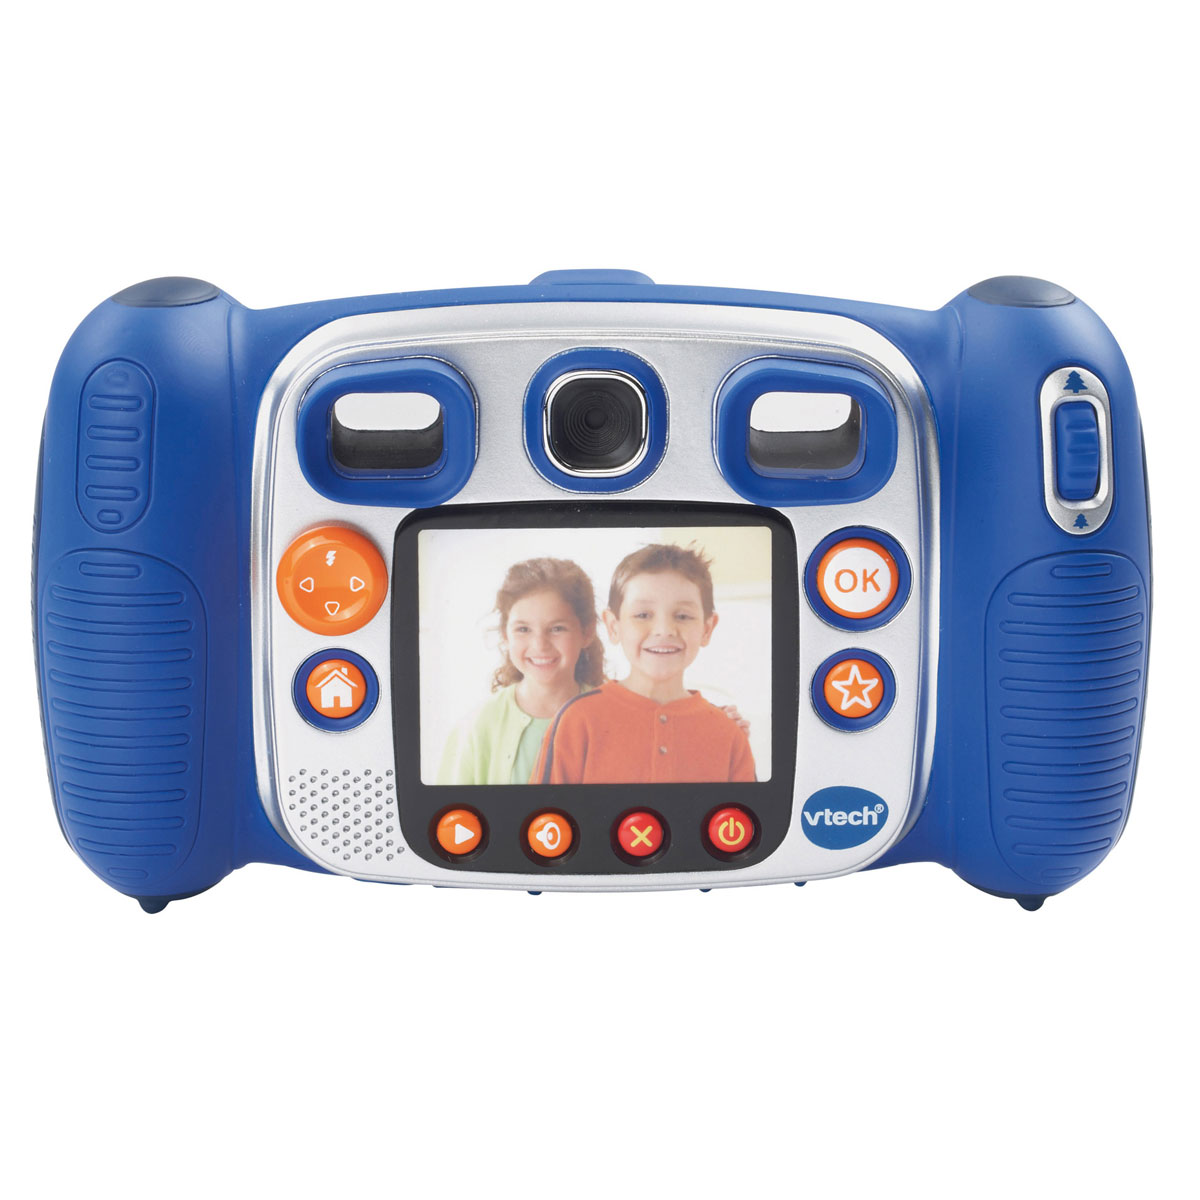 Buy Vtech Kidizoom Duo Camera In Blue Primary Ict Shop